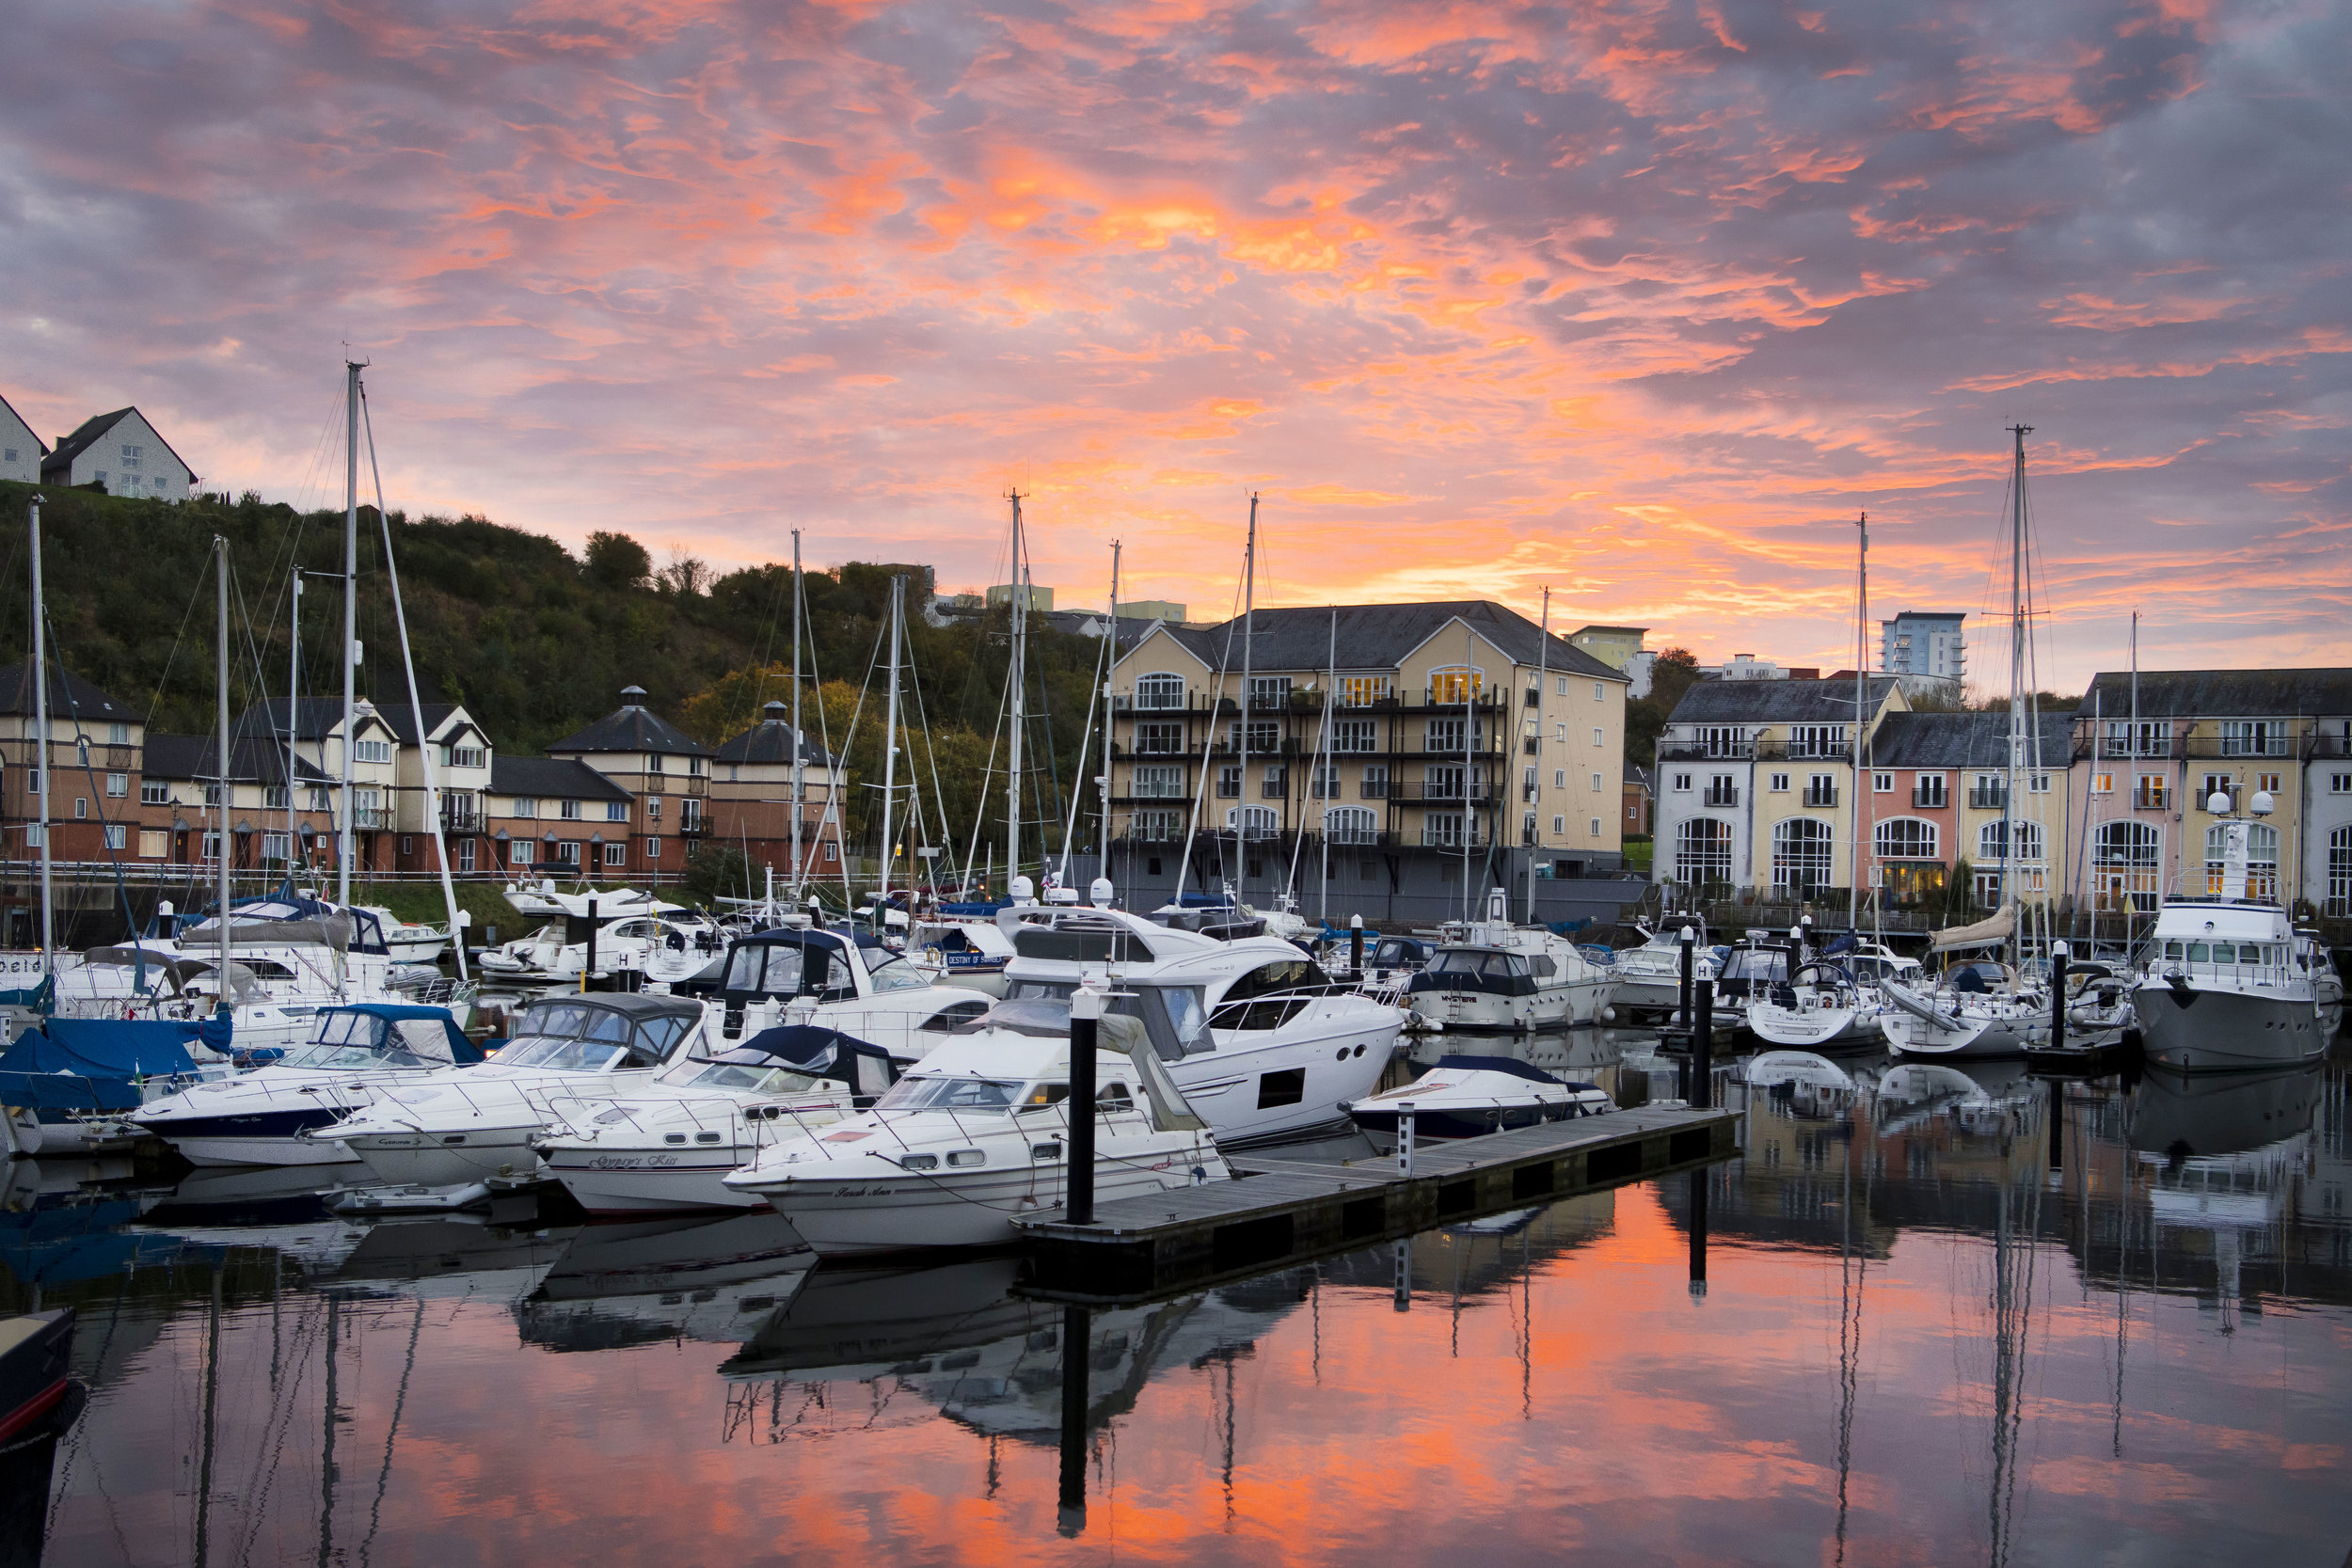 Penarth Marina at sunset in Penarth, Wales, UK.